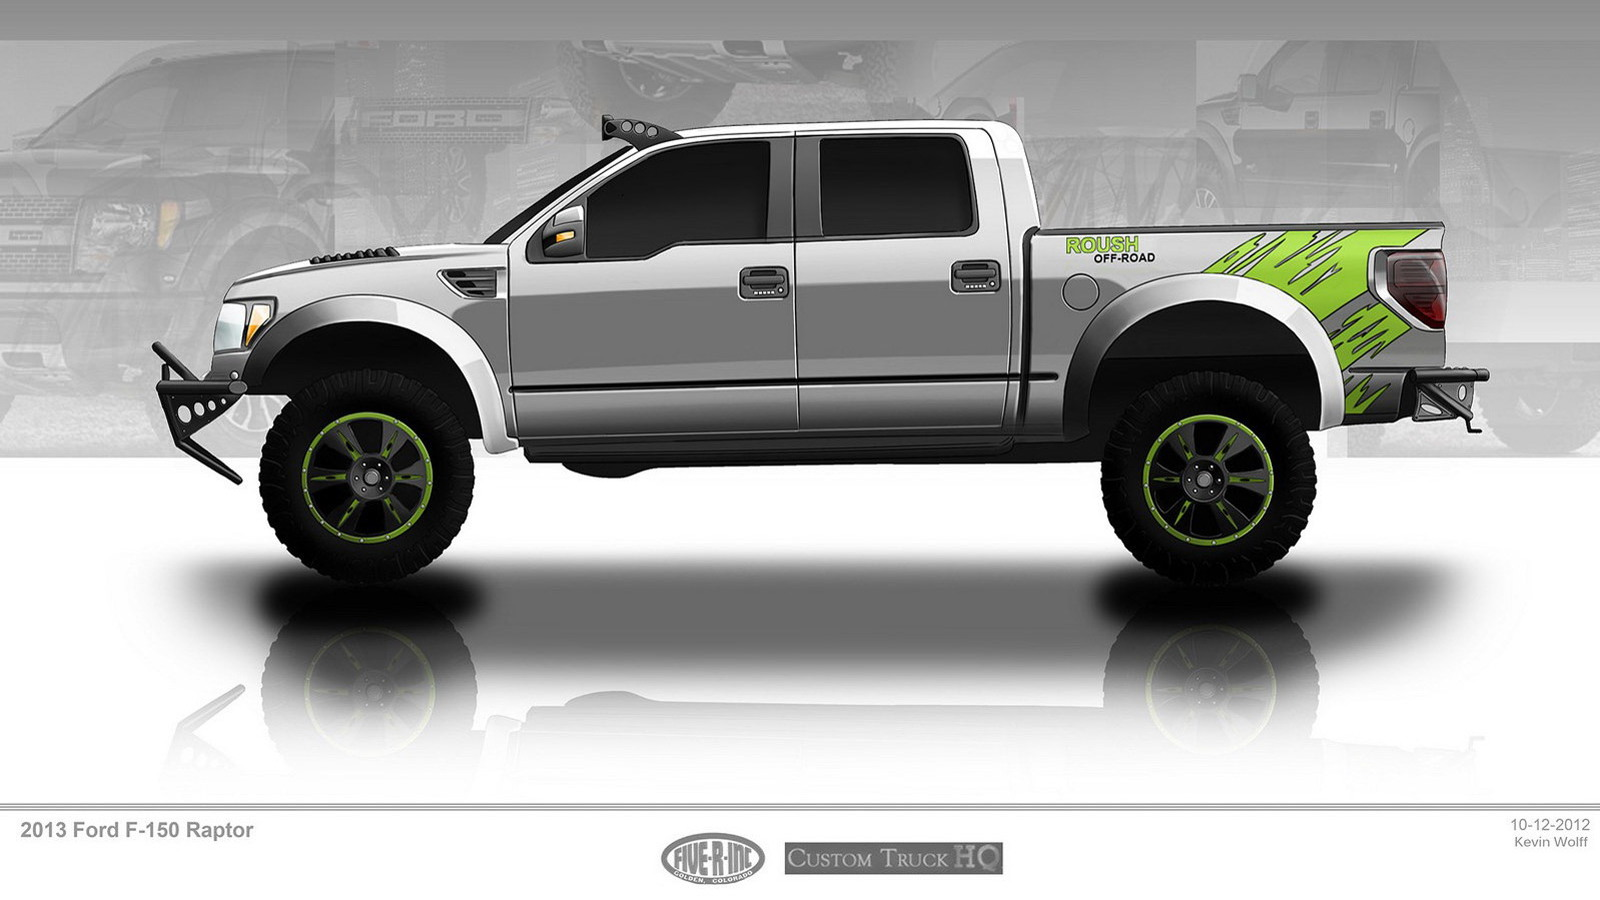 Custom Truck HQ Ford F-150 SVT Raptor